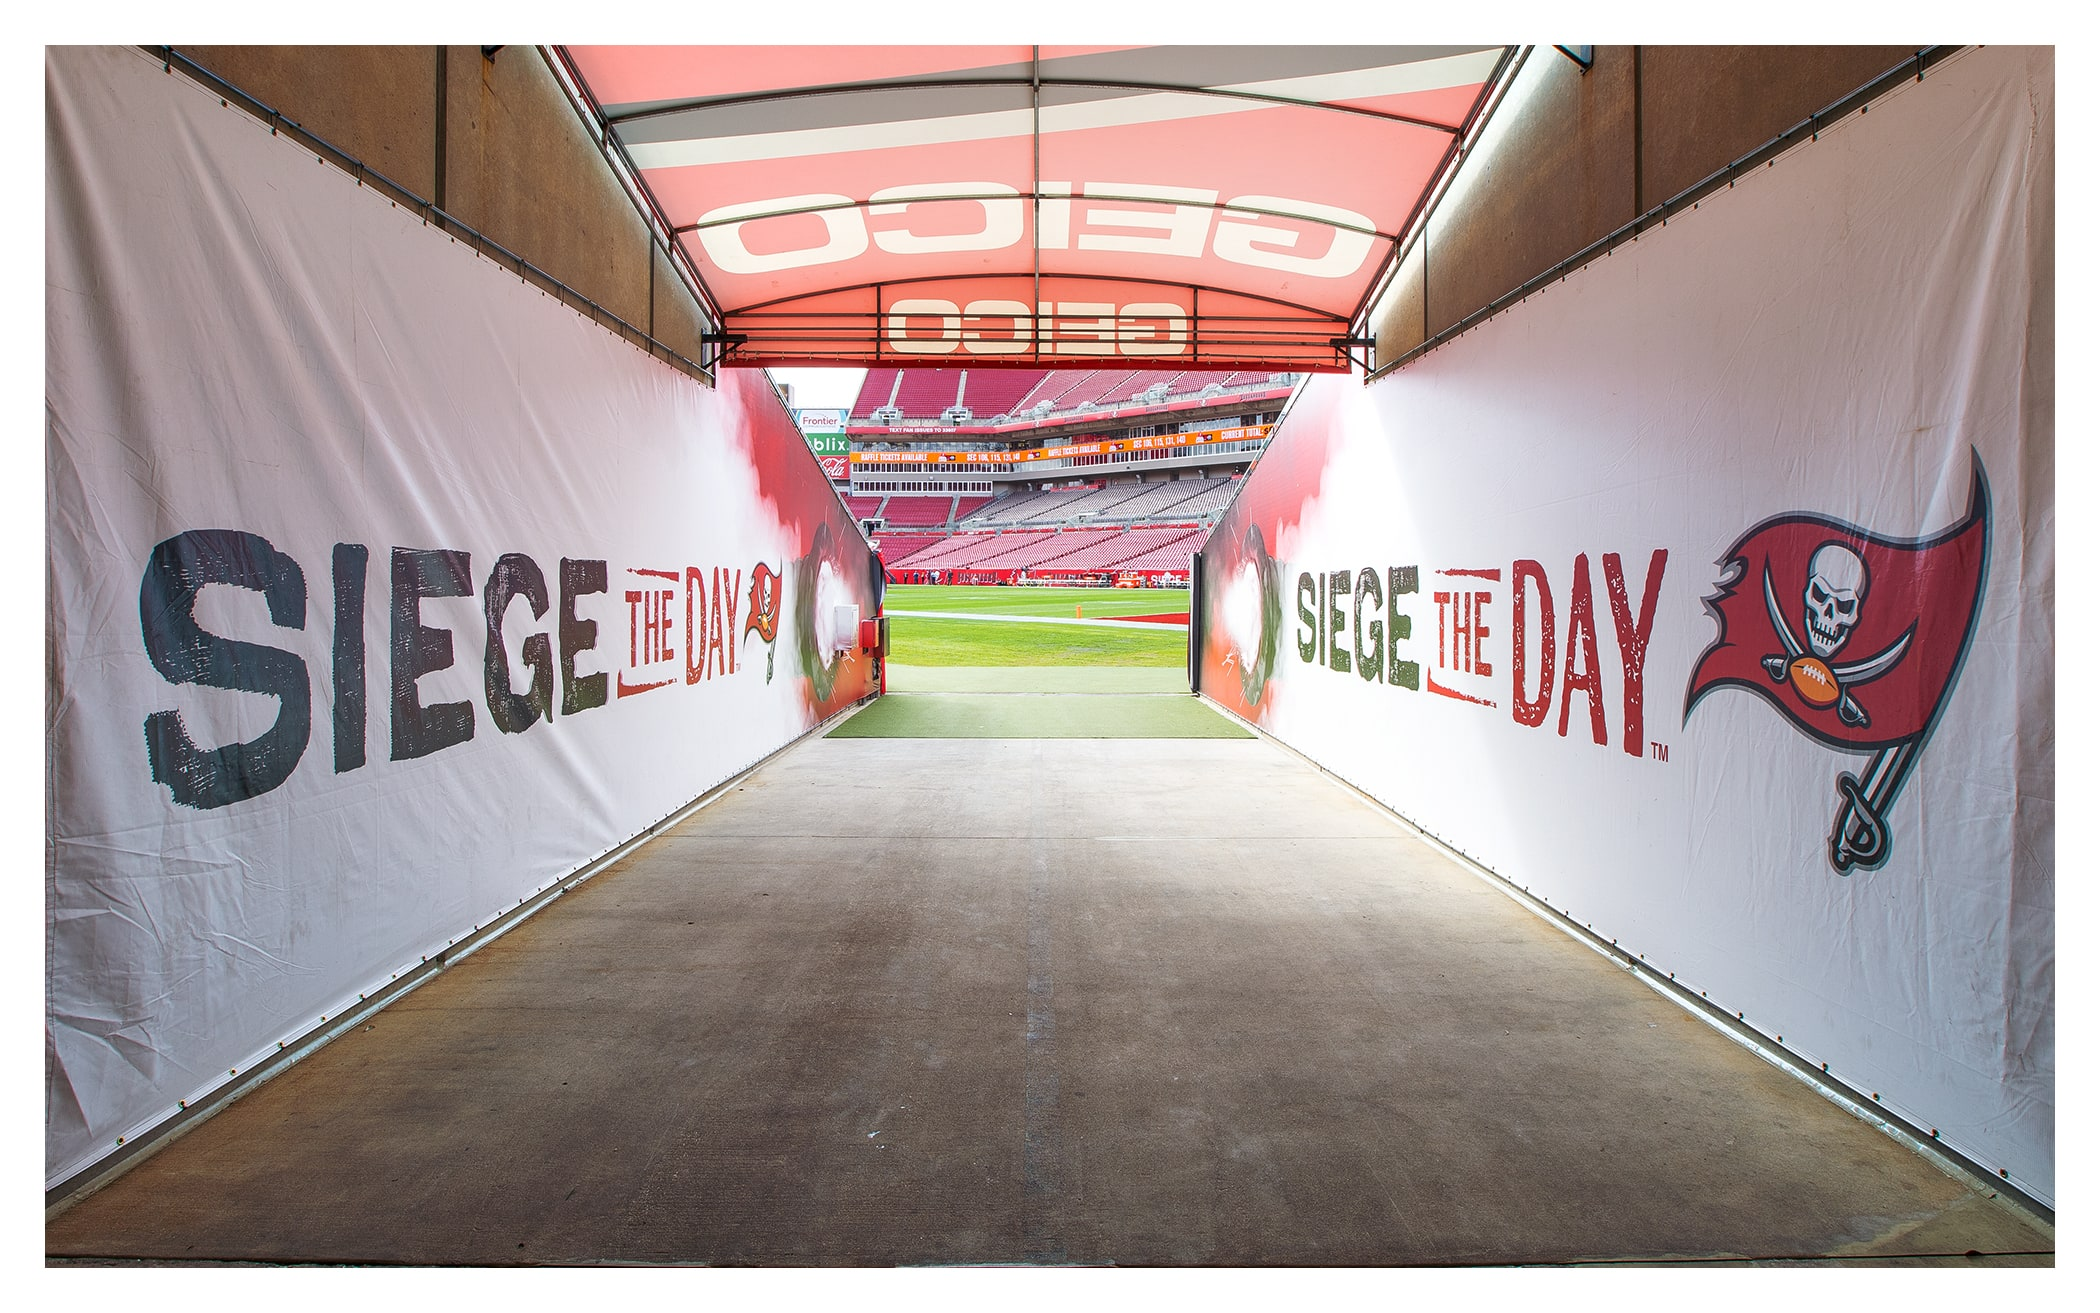 Photo of tunnel leading out on to the field with Siege the Day banners on the walls